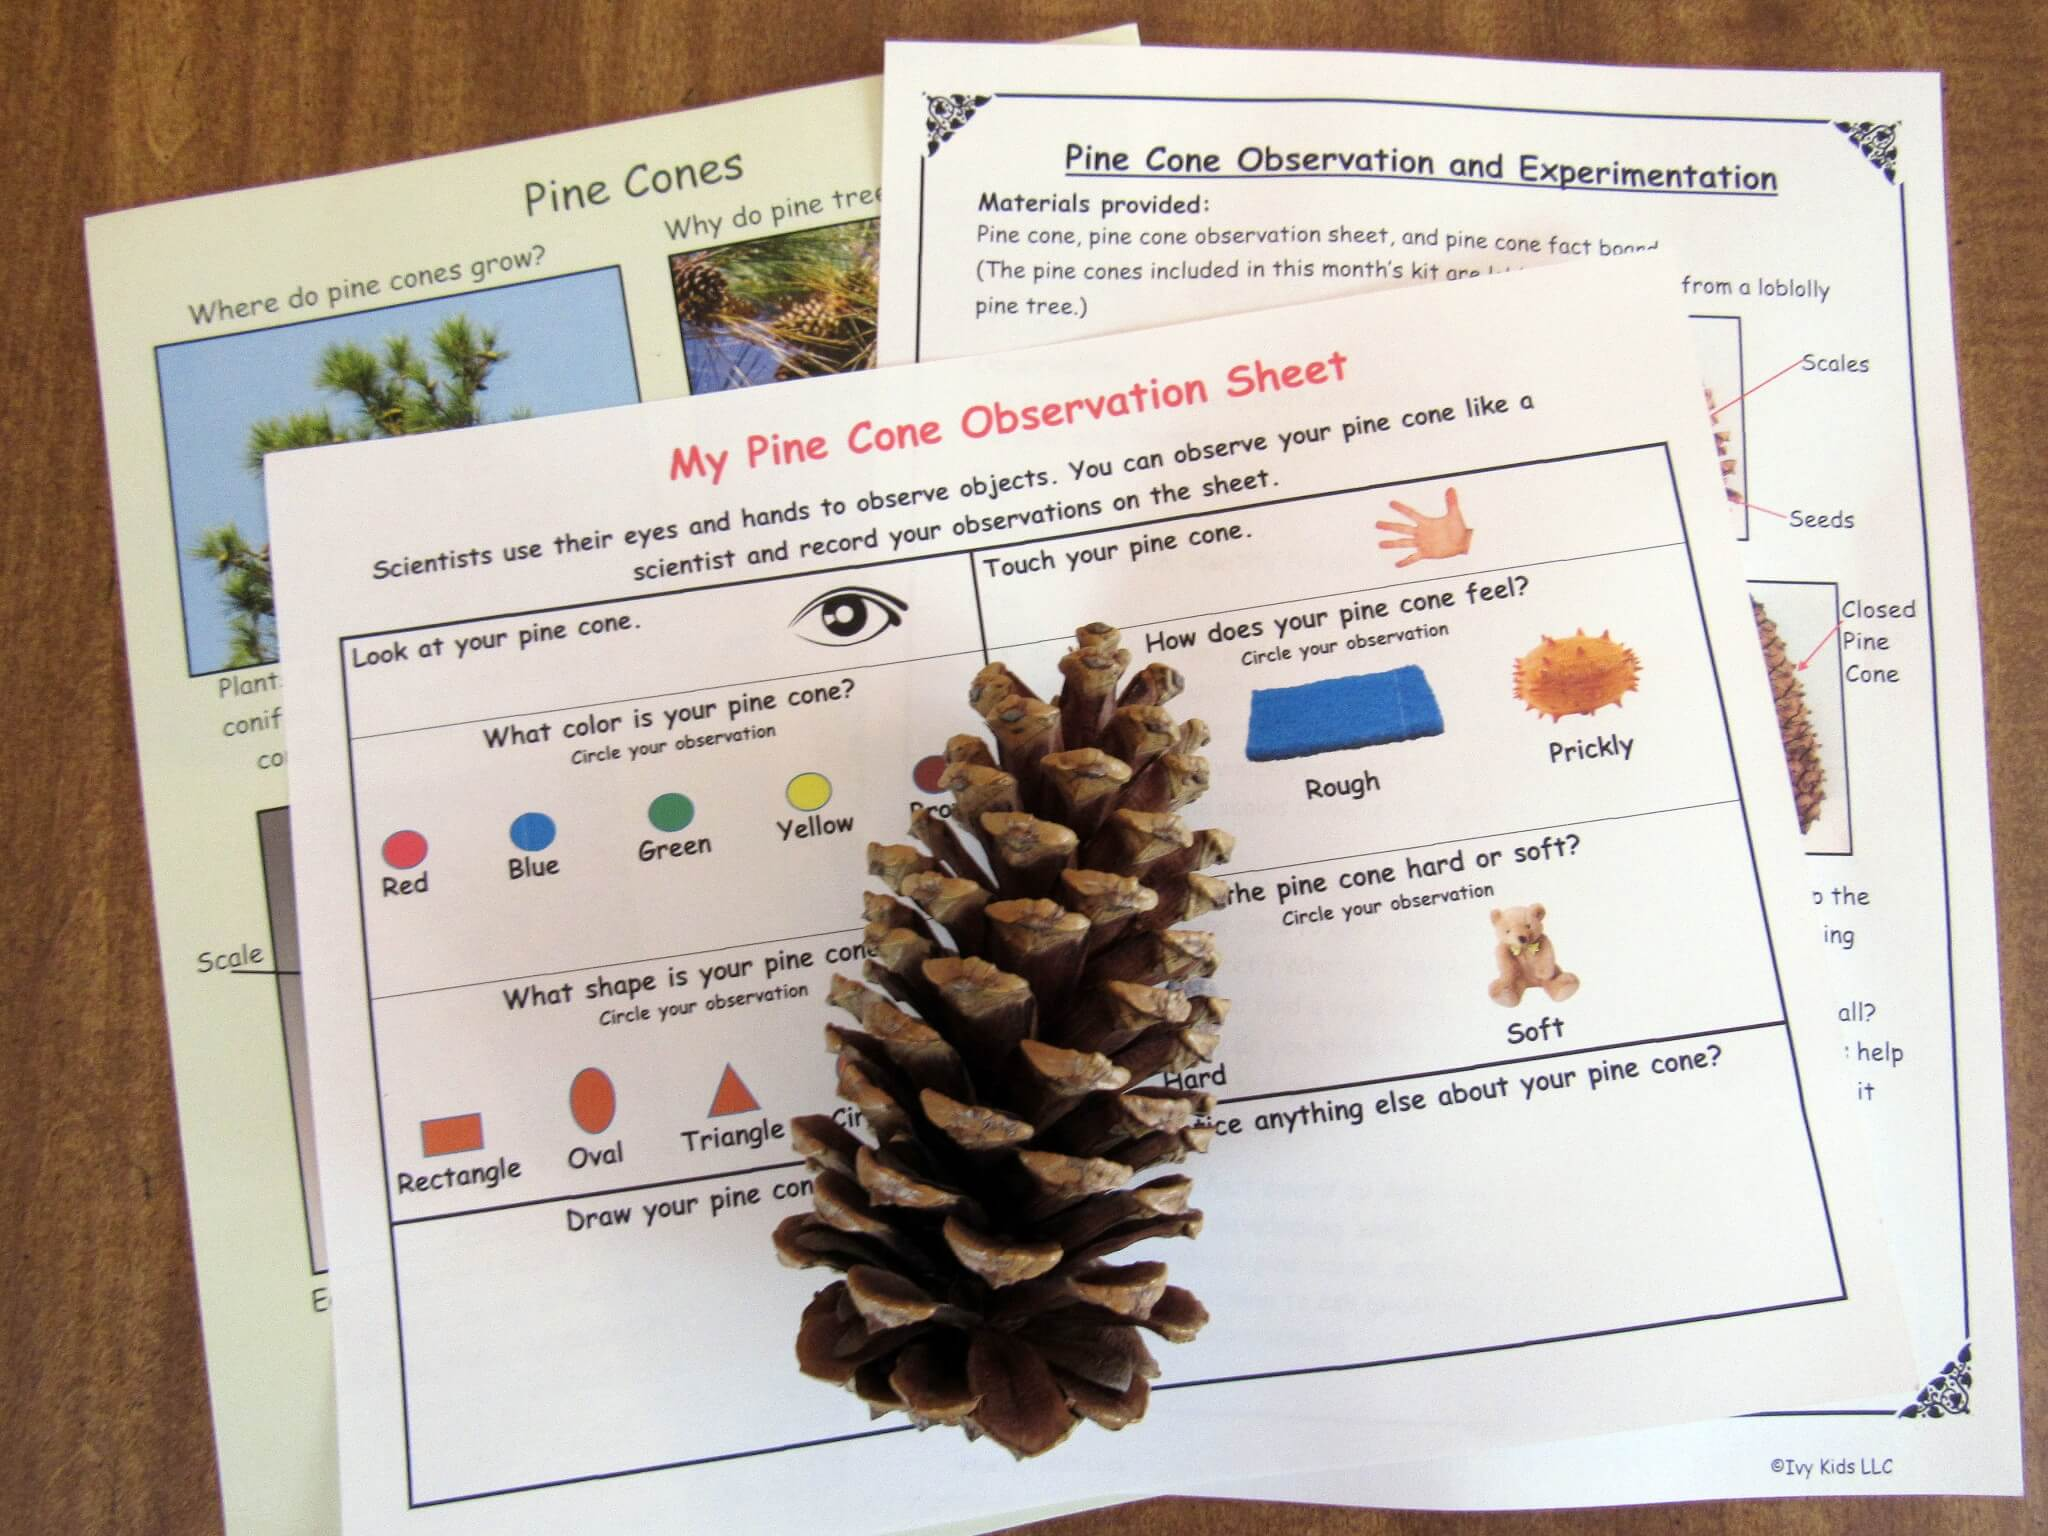 Pine Cone Observation